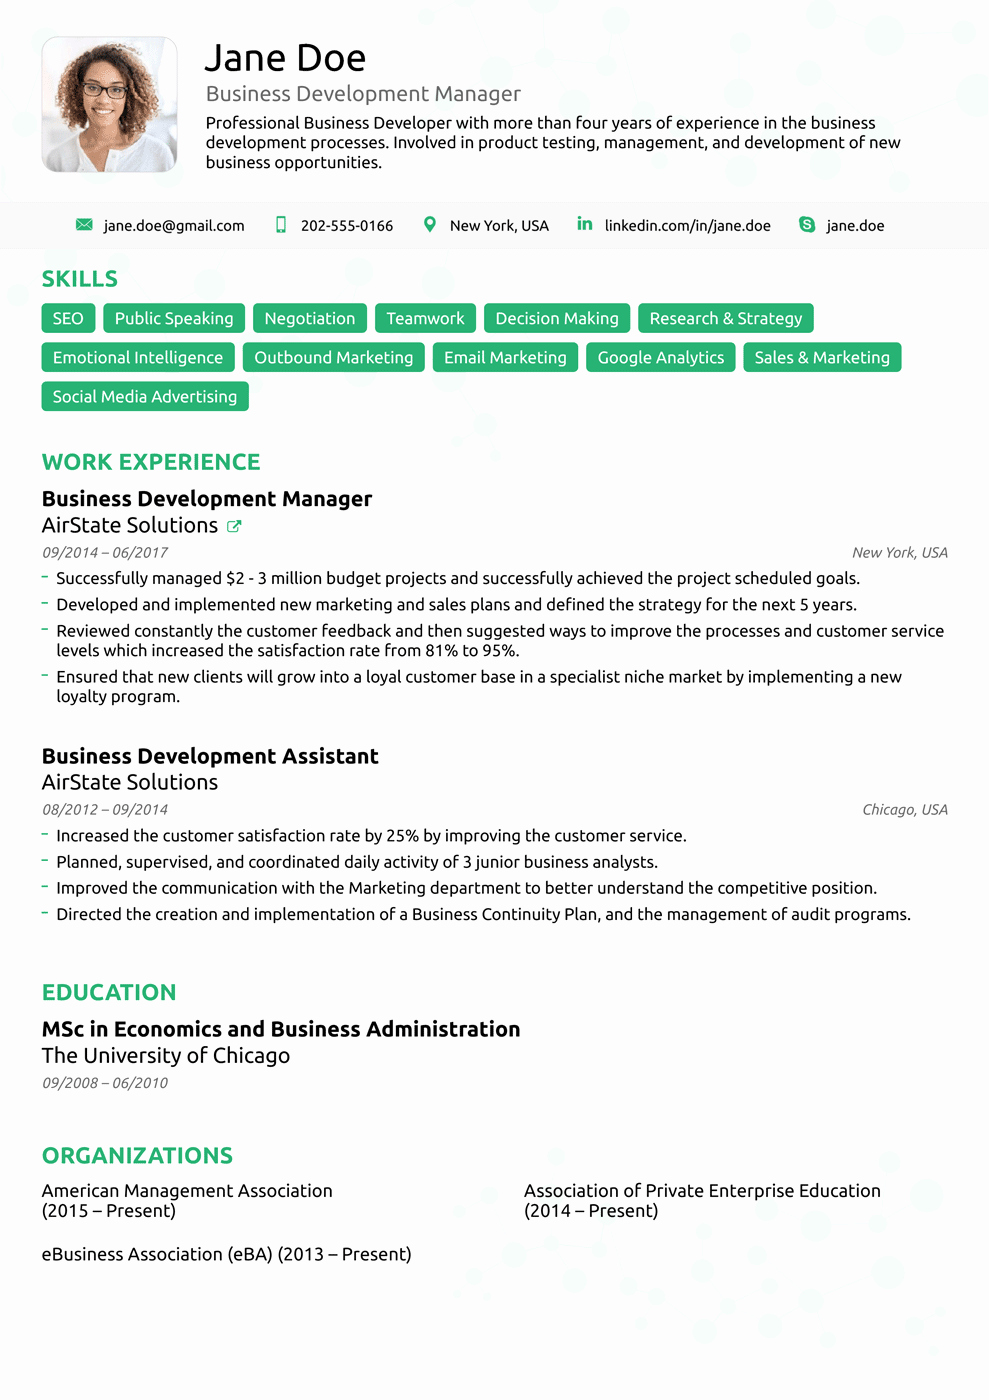 Resume with Picture Template Inspirational 2018 Professional Resume Templates as they Should Be [8 ]